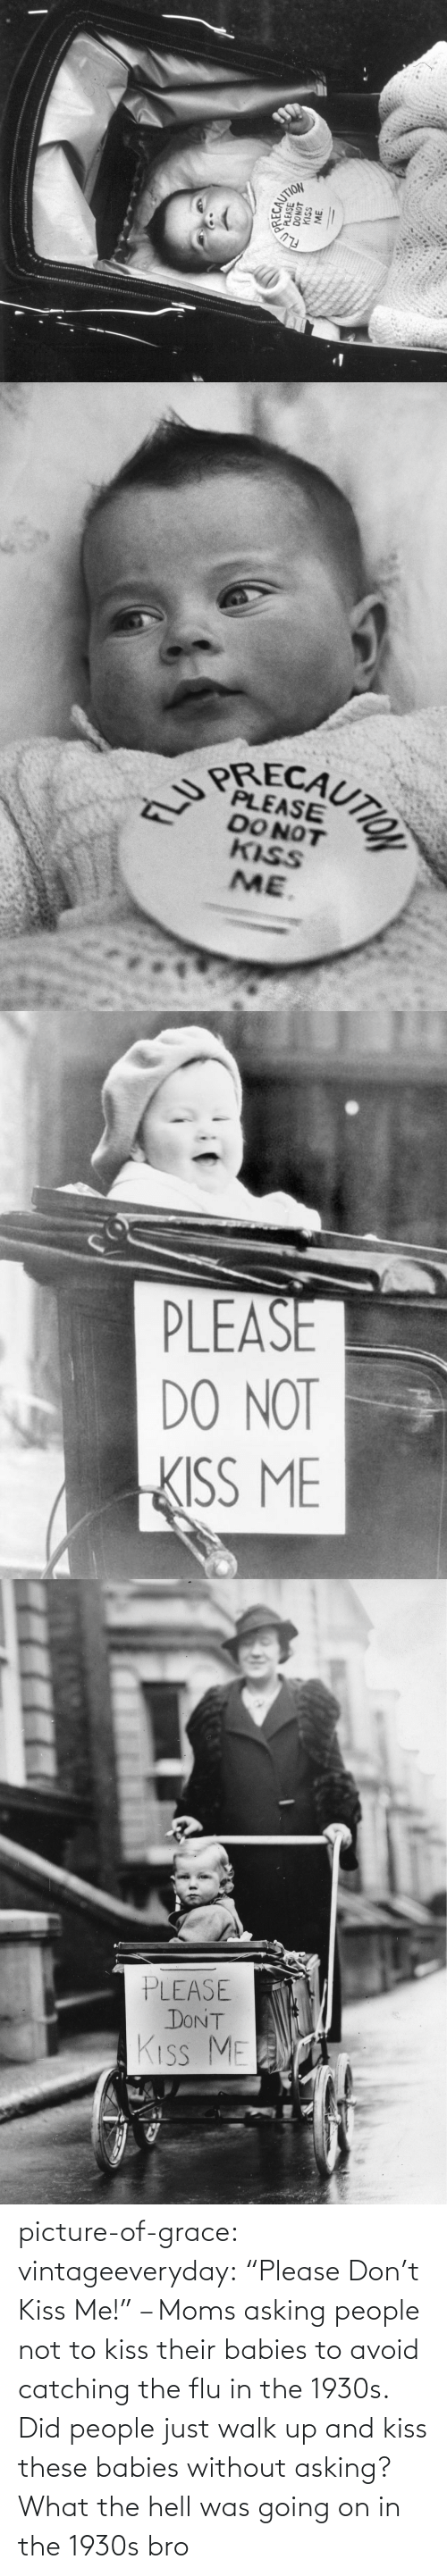 "Kiss: picture-of-grace:  vintageeveryday: ""Please Don't Kiss Me!"" – Moms asking people not to kiss their babies to avoid catching the flu in the 1930s.   Did people just walk up and kiss these babies without asking? What the hell was going on in the 1930s bro"